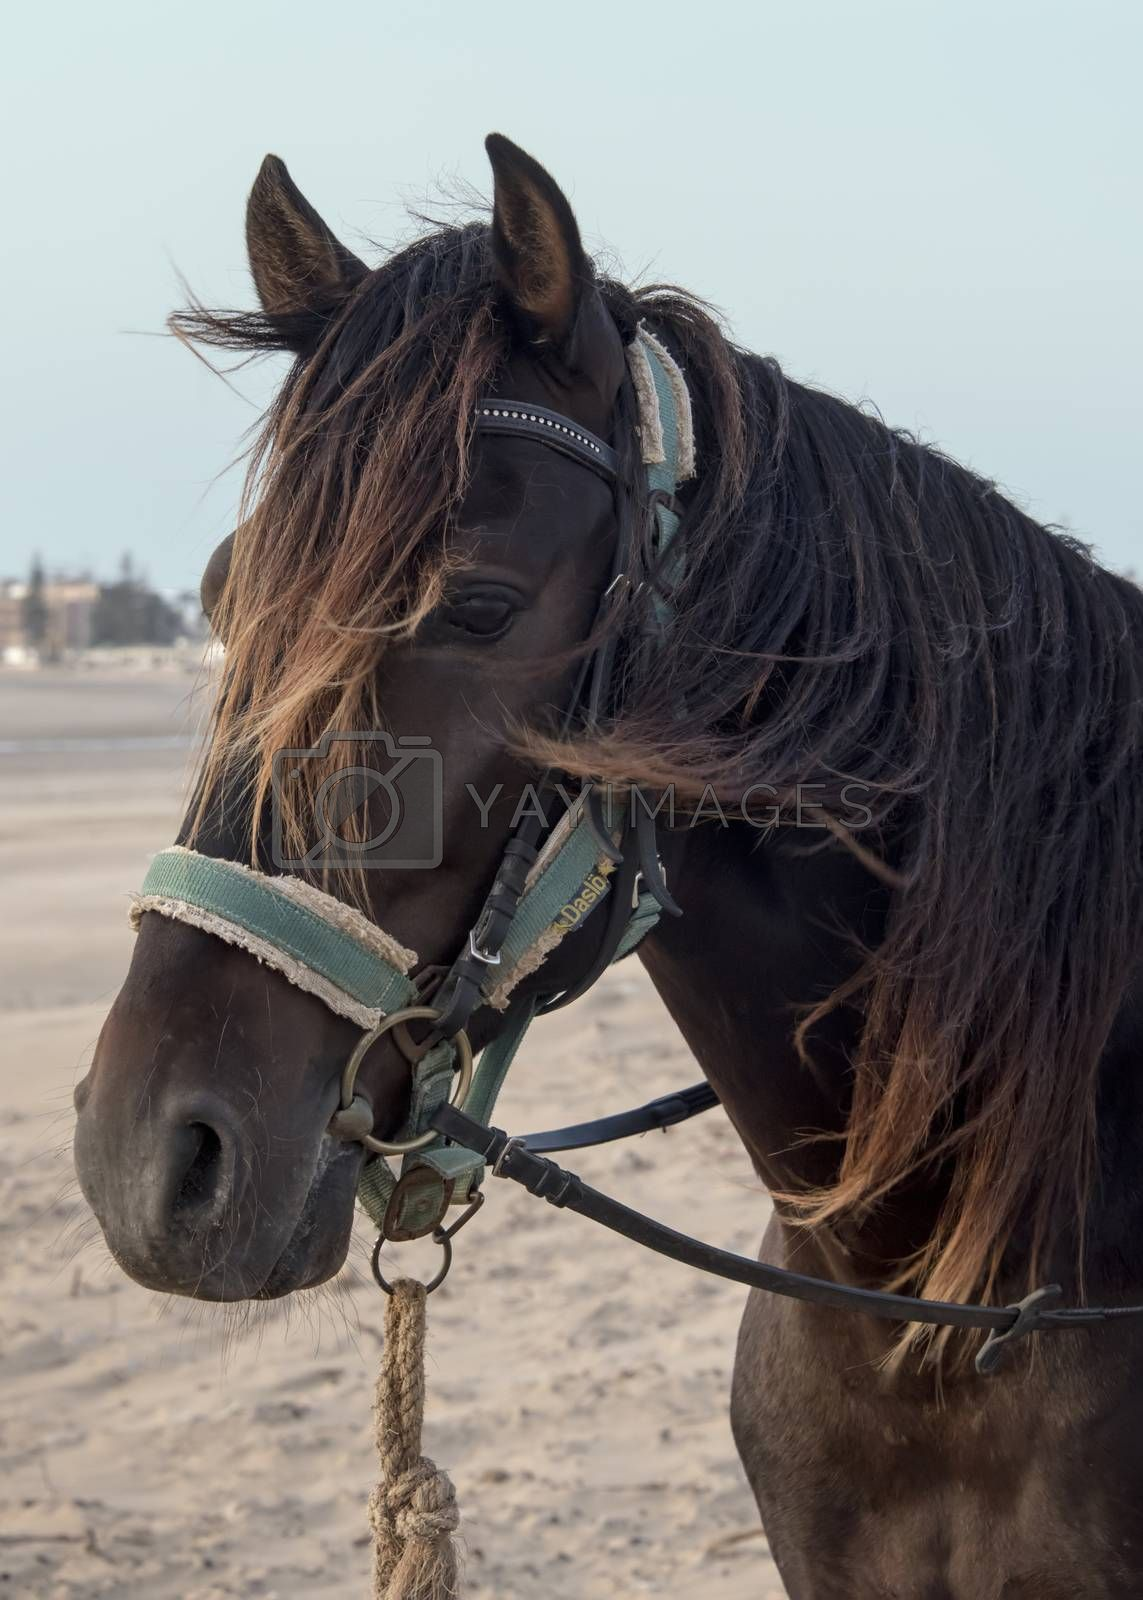 Essaouria, Morocco - September 2017: Horse in a blue harnesses stood waiting on the beach, closeup